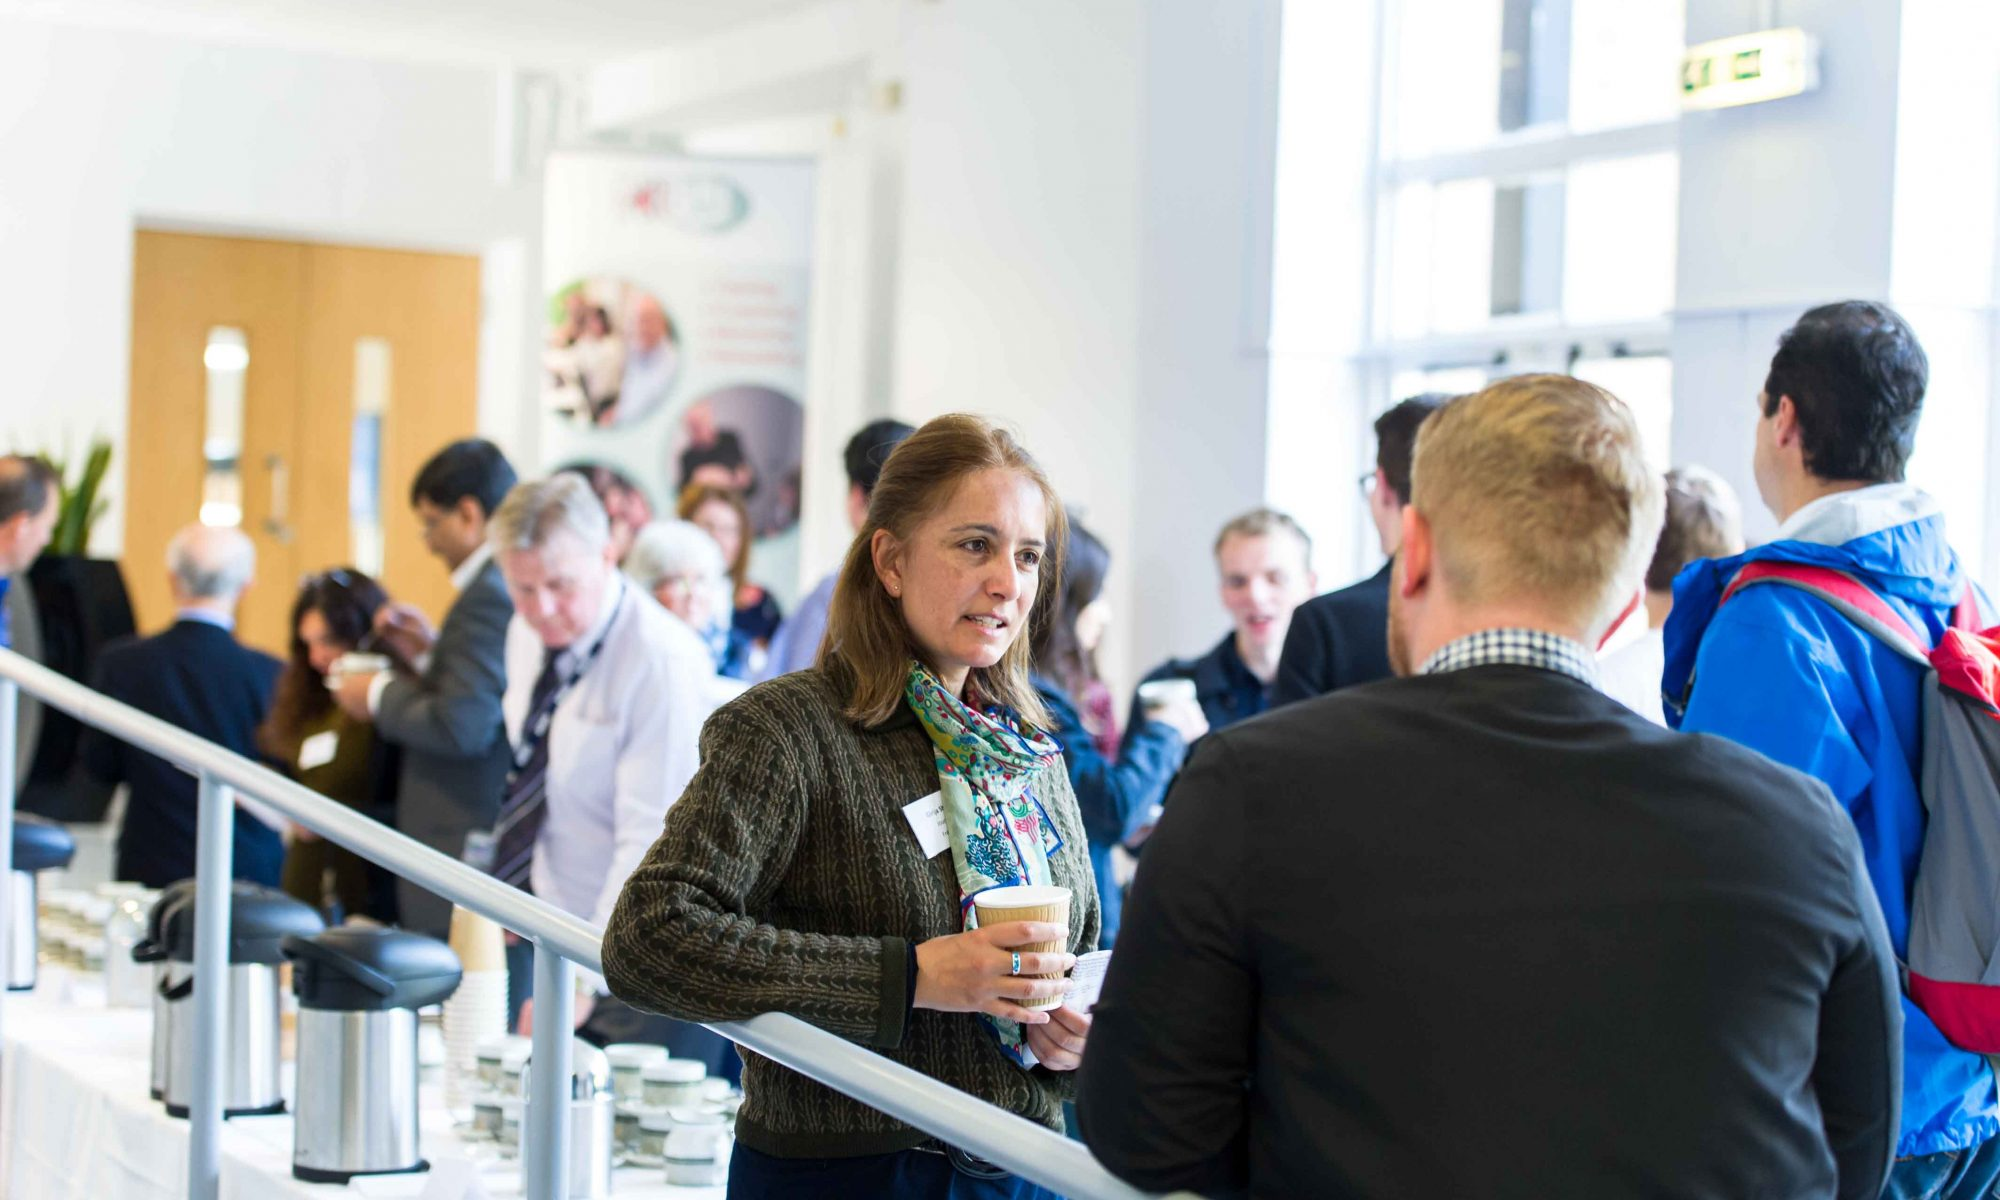 People networking in a large reception area